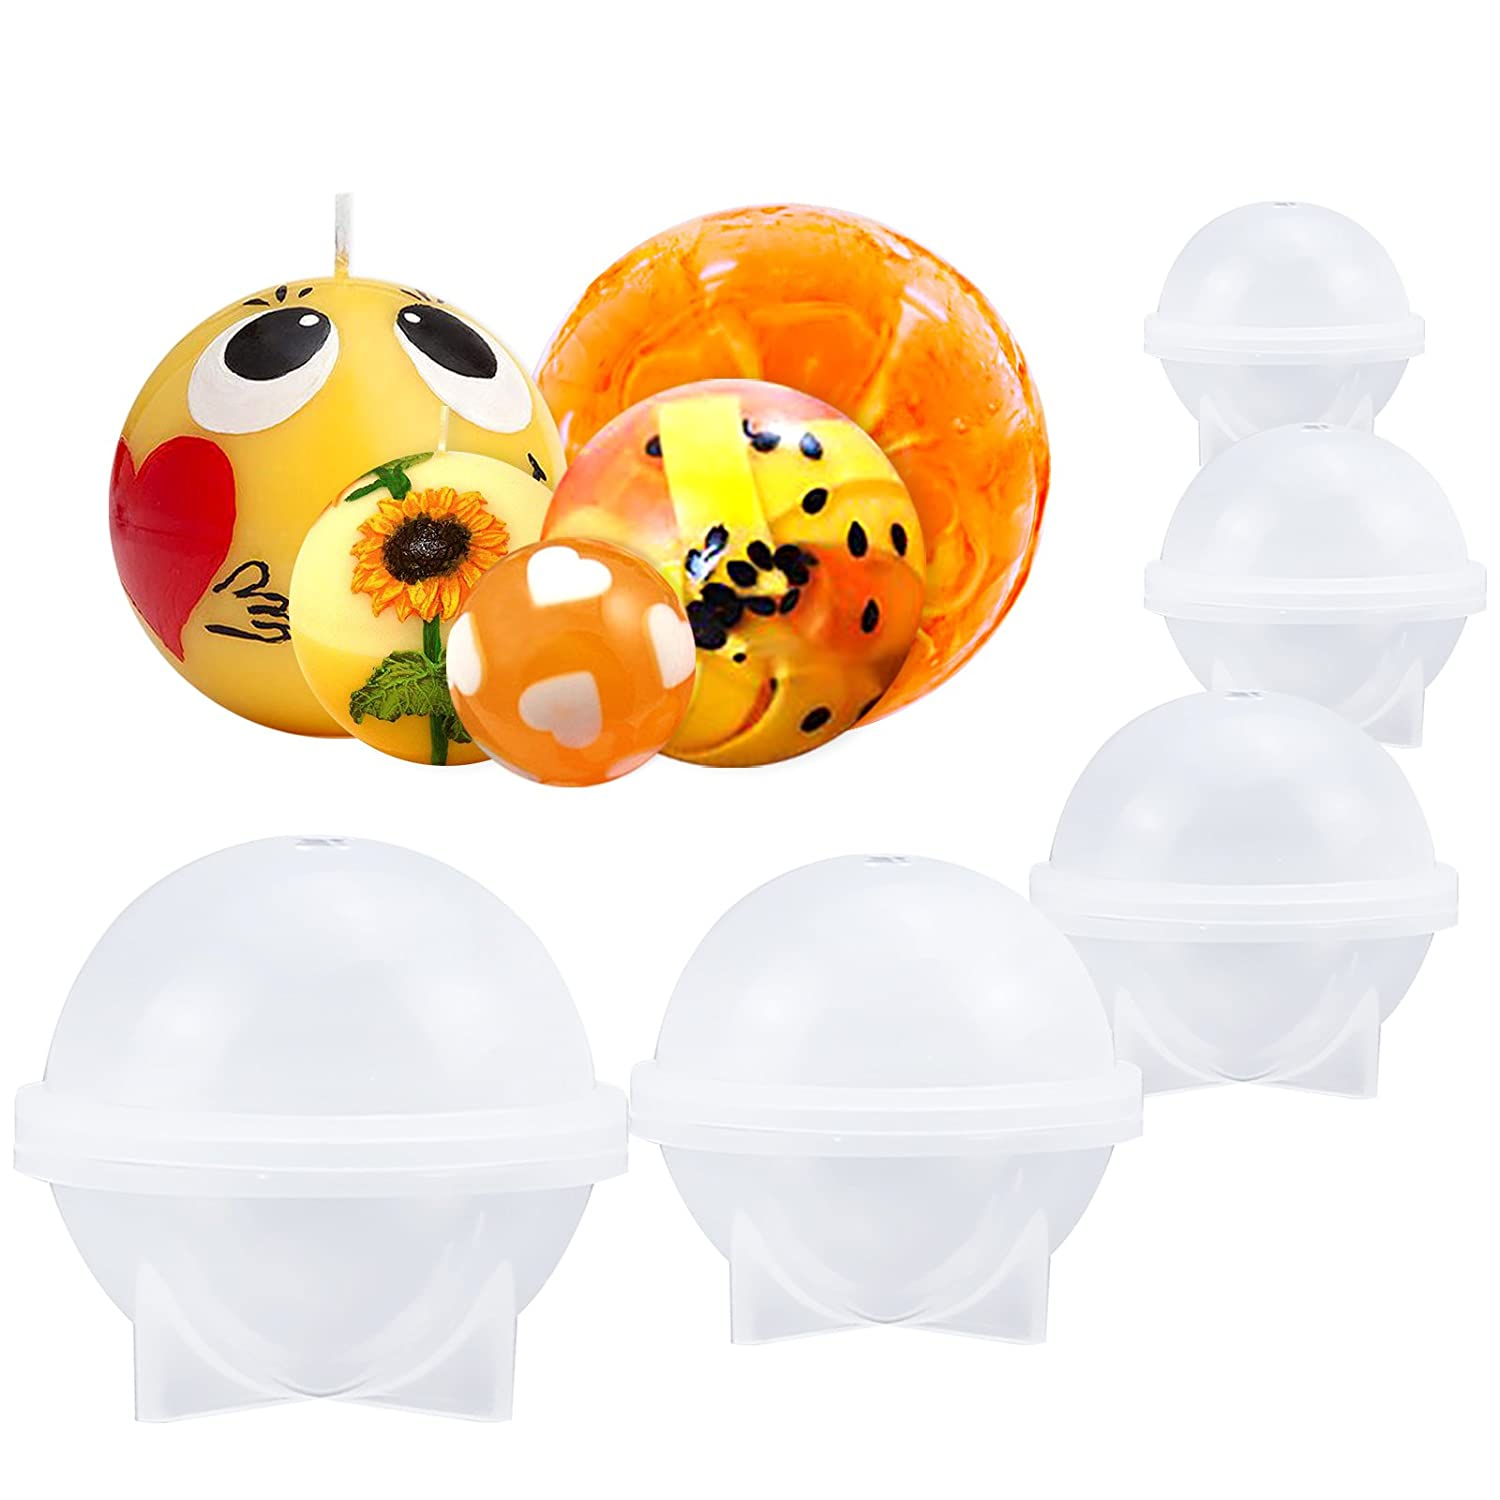 Funshowcase Sphere Round Silicone Mold for Resin Epoxy Jewelry Making Bath Bomb 5-Piece Set Candle Wax Homemade Soap